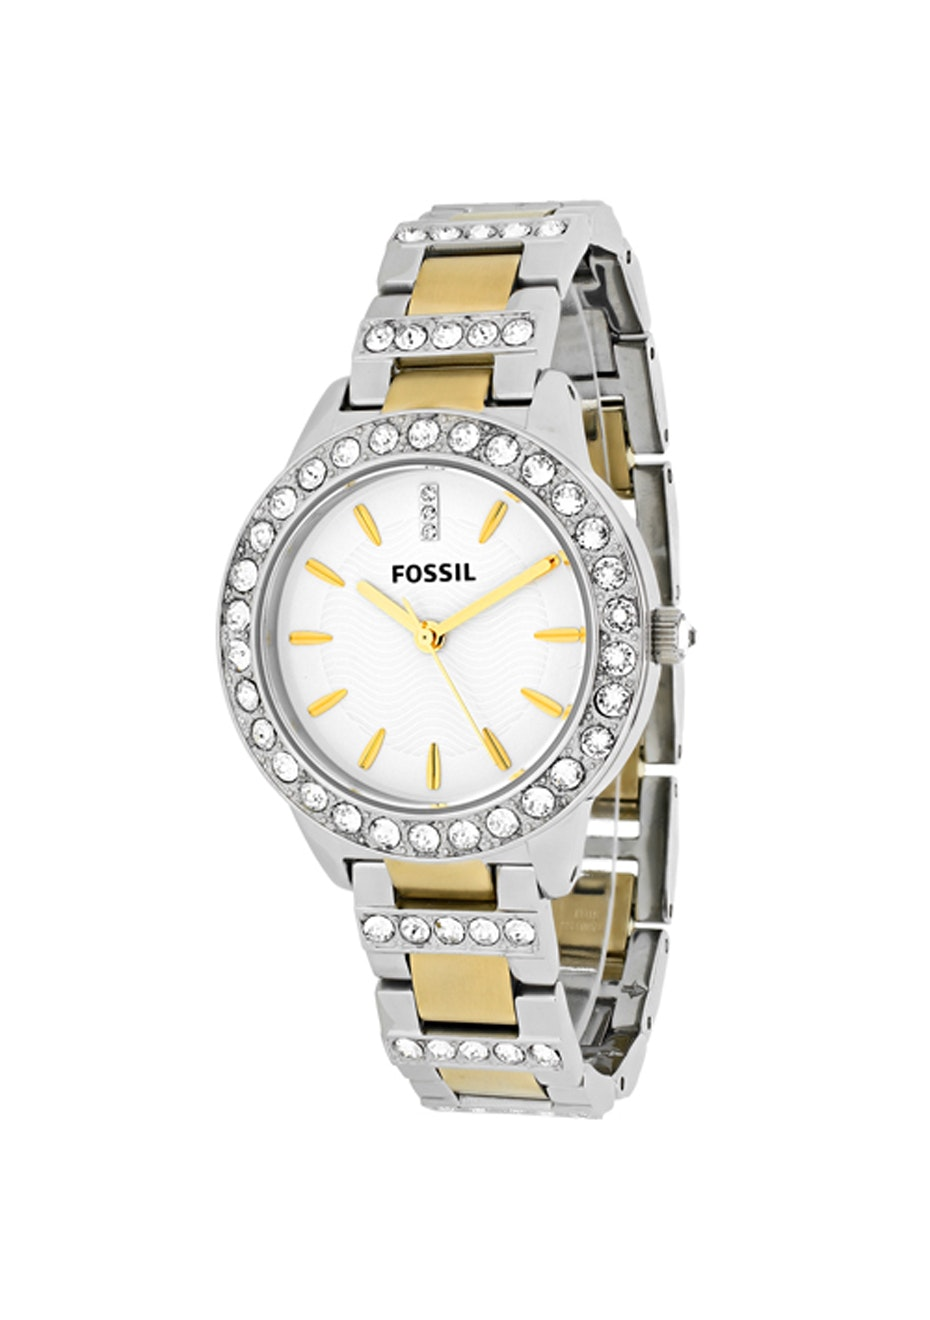 Fossil Women's Jesse - White/Silver/Gold